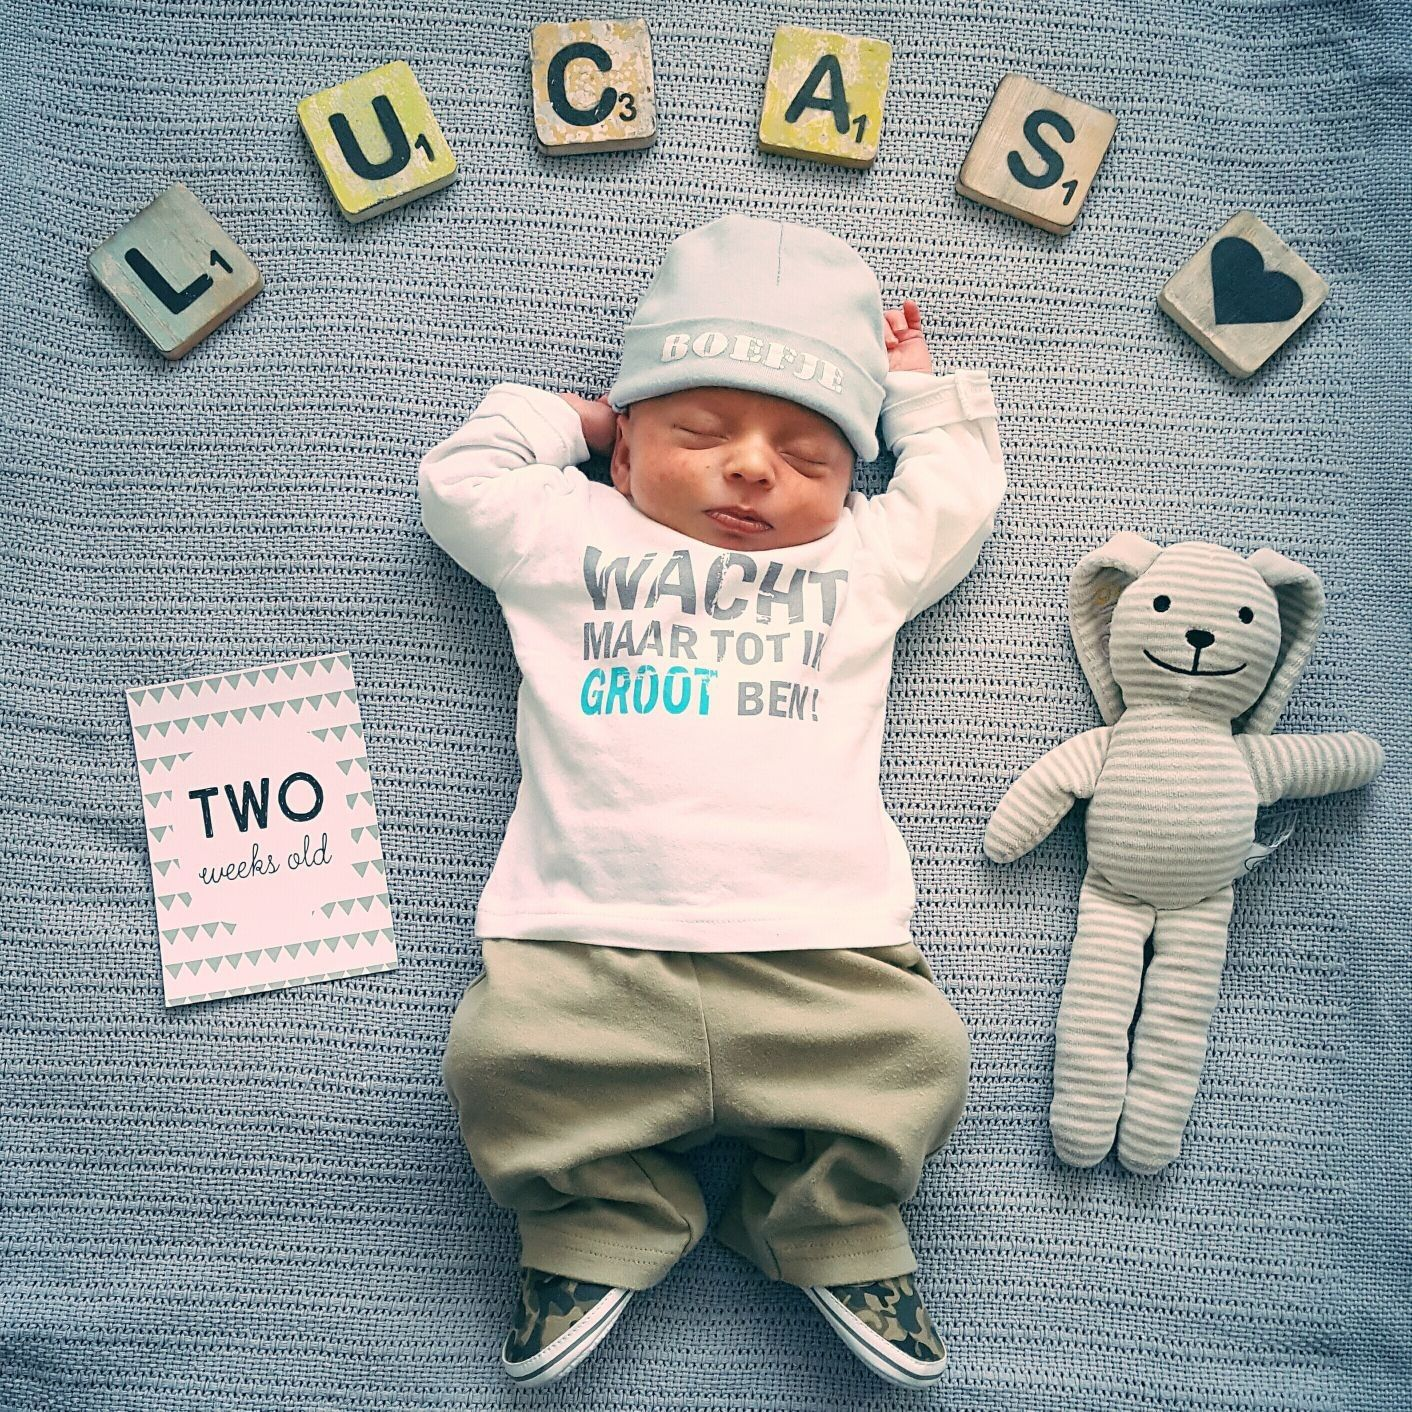 Baby boy newborn 2 weeks old photo idea milestone baby boy pictures boy photos